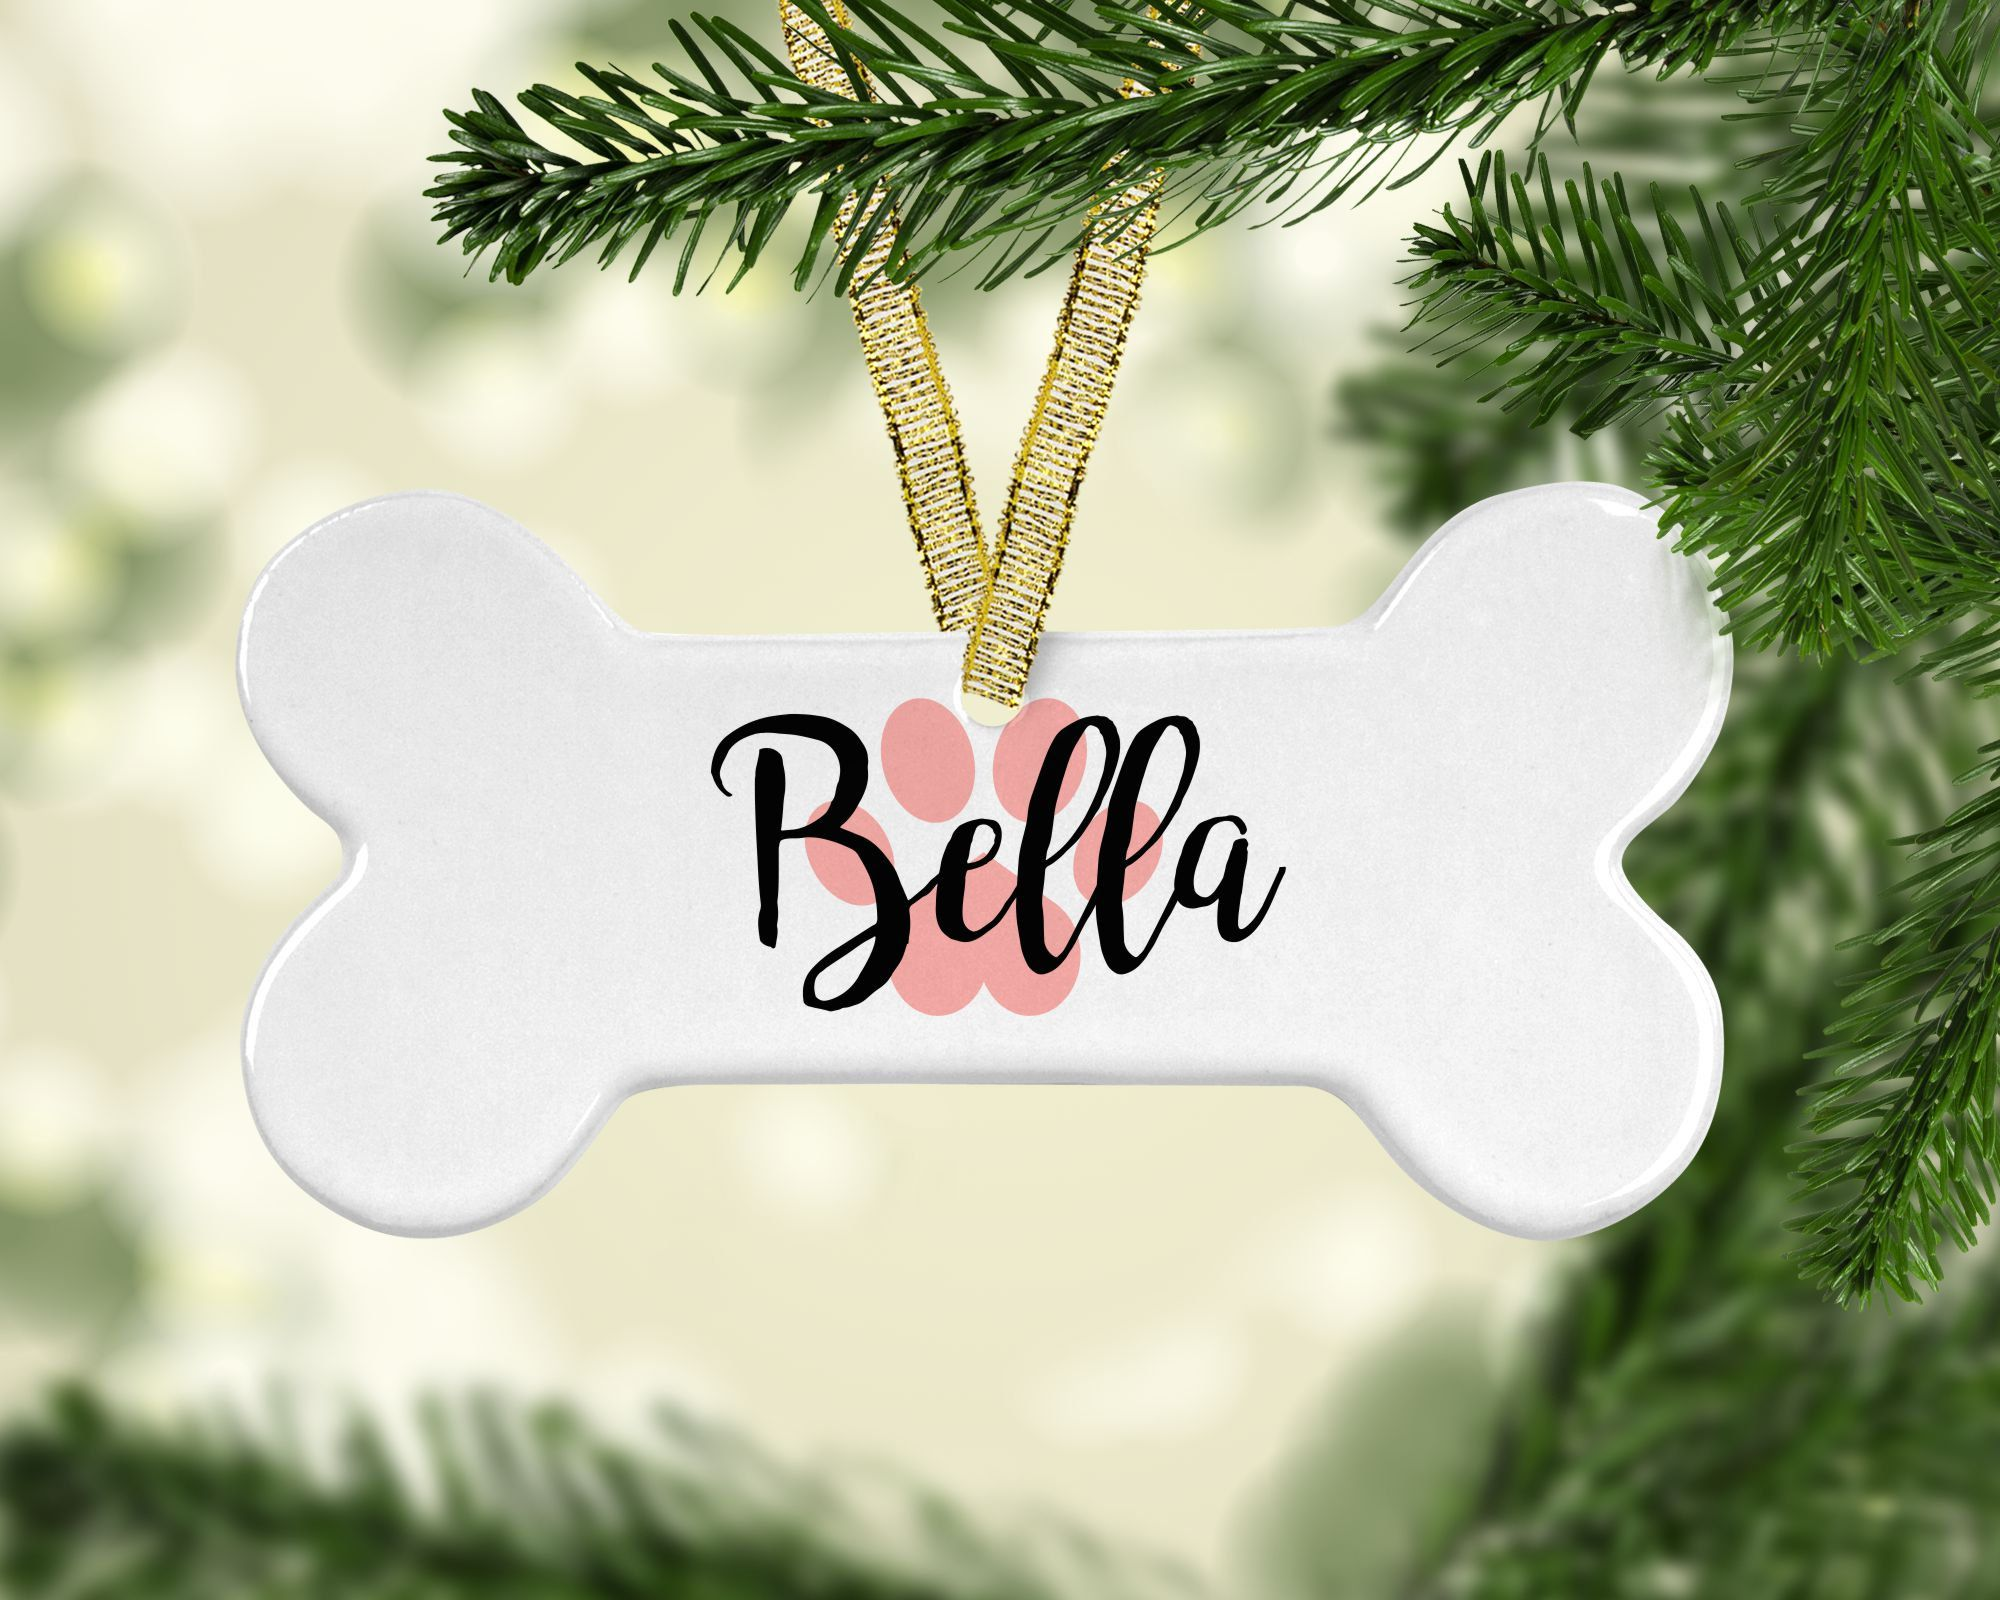 Get your personalized pet ornaments in our shop!